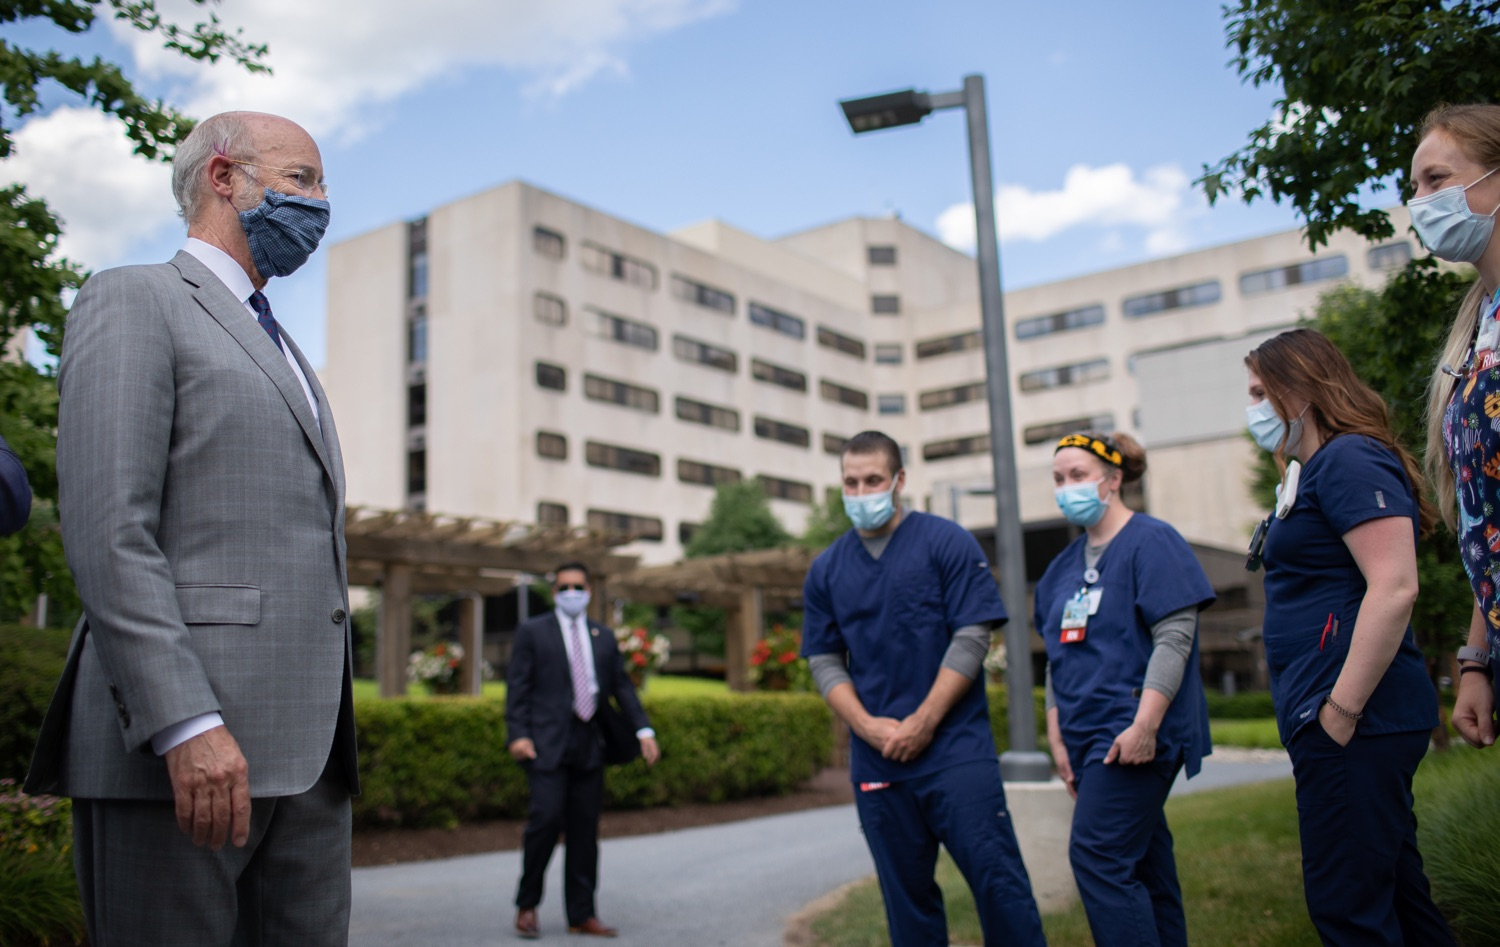 """<a href=""""https://filesource.wostreaming.net/commonwealthofpa/photo/18093_gov-healthcare_workers_dz_09.jpg"""" target=""""_blank"""">⇣Download Photo<br></a>Pennsylvania Governor Tom Wolf visits with medical workers during his visit to Milton S. Hershey Medical Center. As the commonwealth continues its measured, phased reopening and COVID-19 case counts continue to decline, Governor Tom Wolf visited Penn State Milton S. Hershey Medical Center today to thank staff and learn more about how the facility is handling the pandemic and preparing for a possible resurgence in the fall.  Harrisburg, PA  June 24, 2020"""